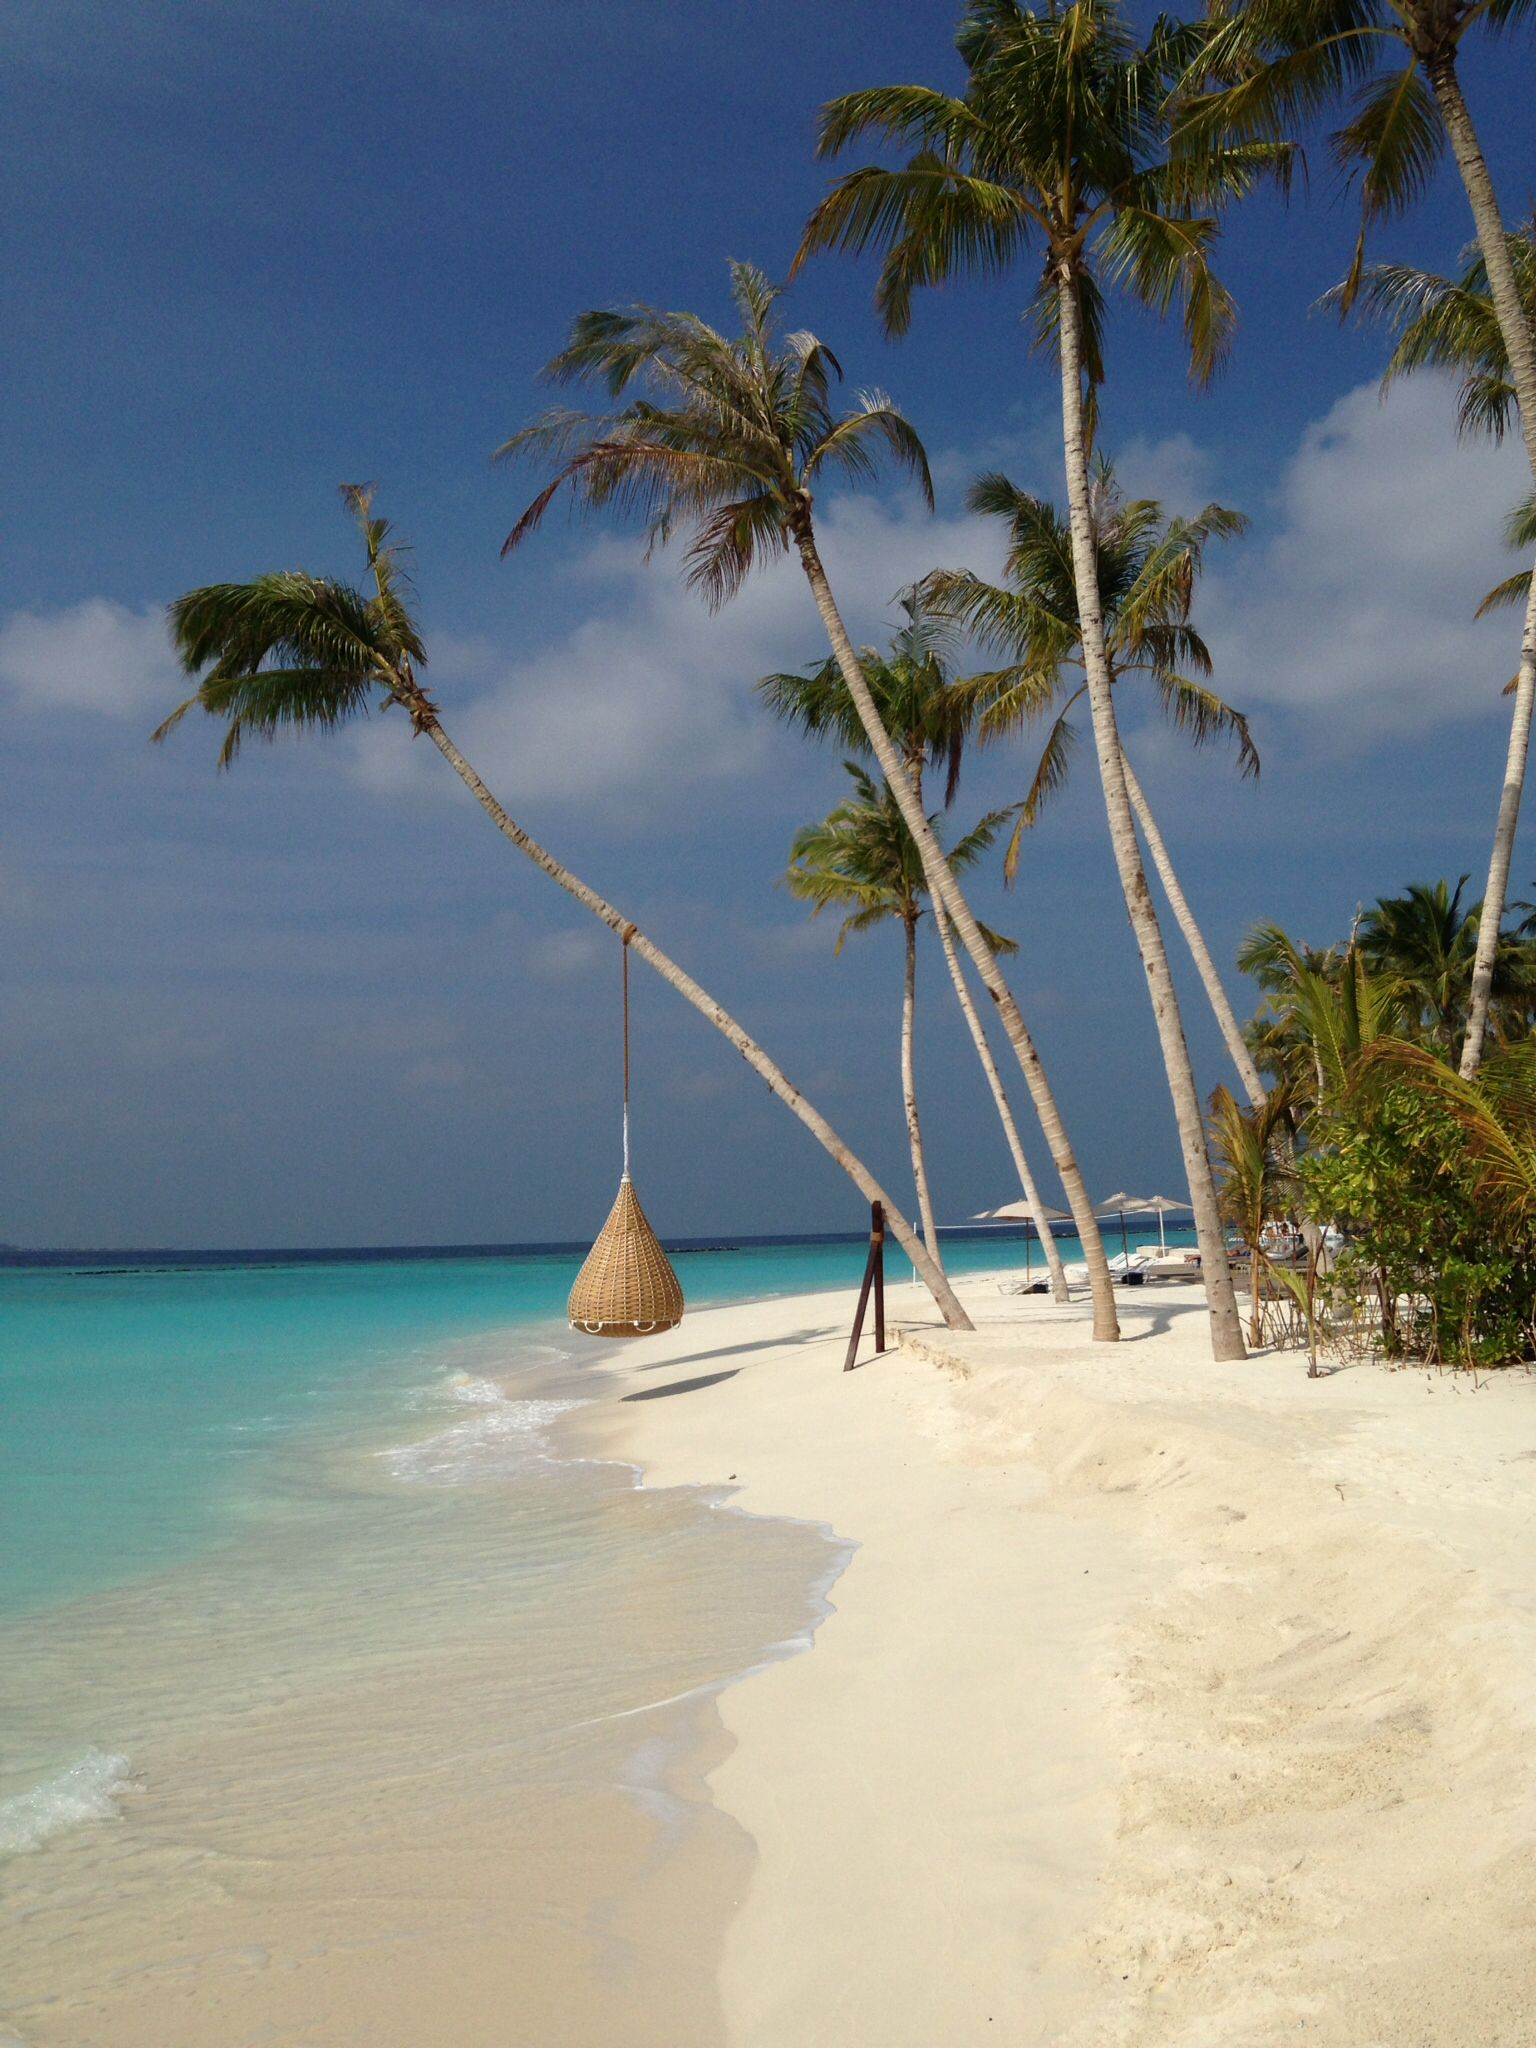 #Amanpulo On Pamalican Island In The #Philippines Should Definitely Be